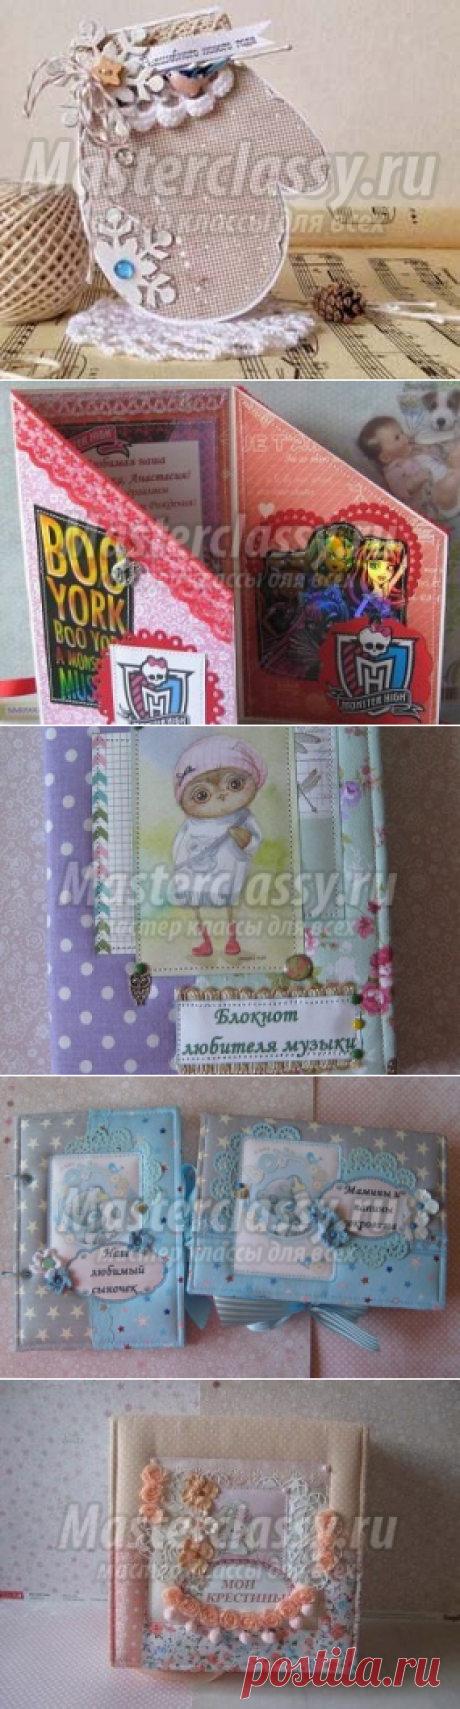 "Scrapbooking"" Master classy - master classes for you"